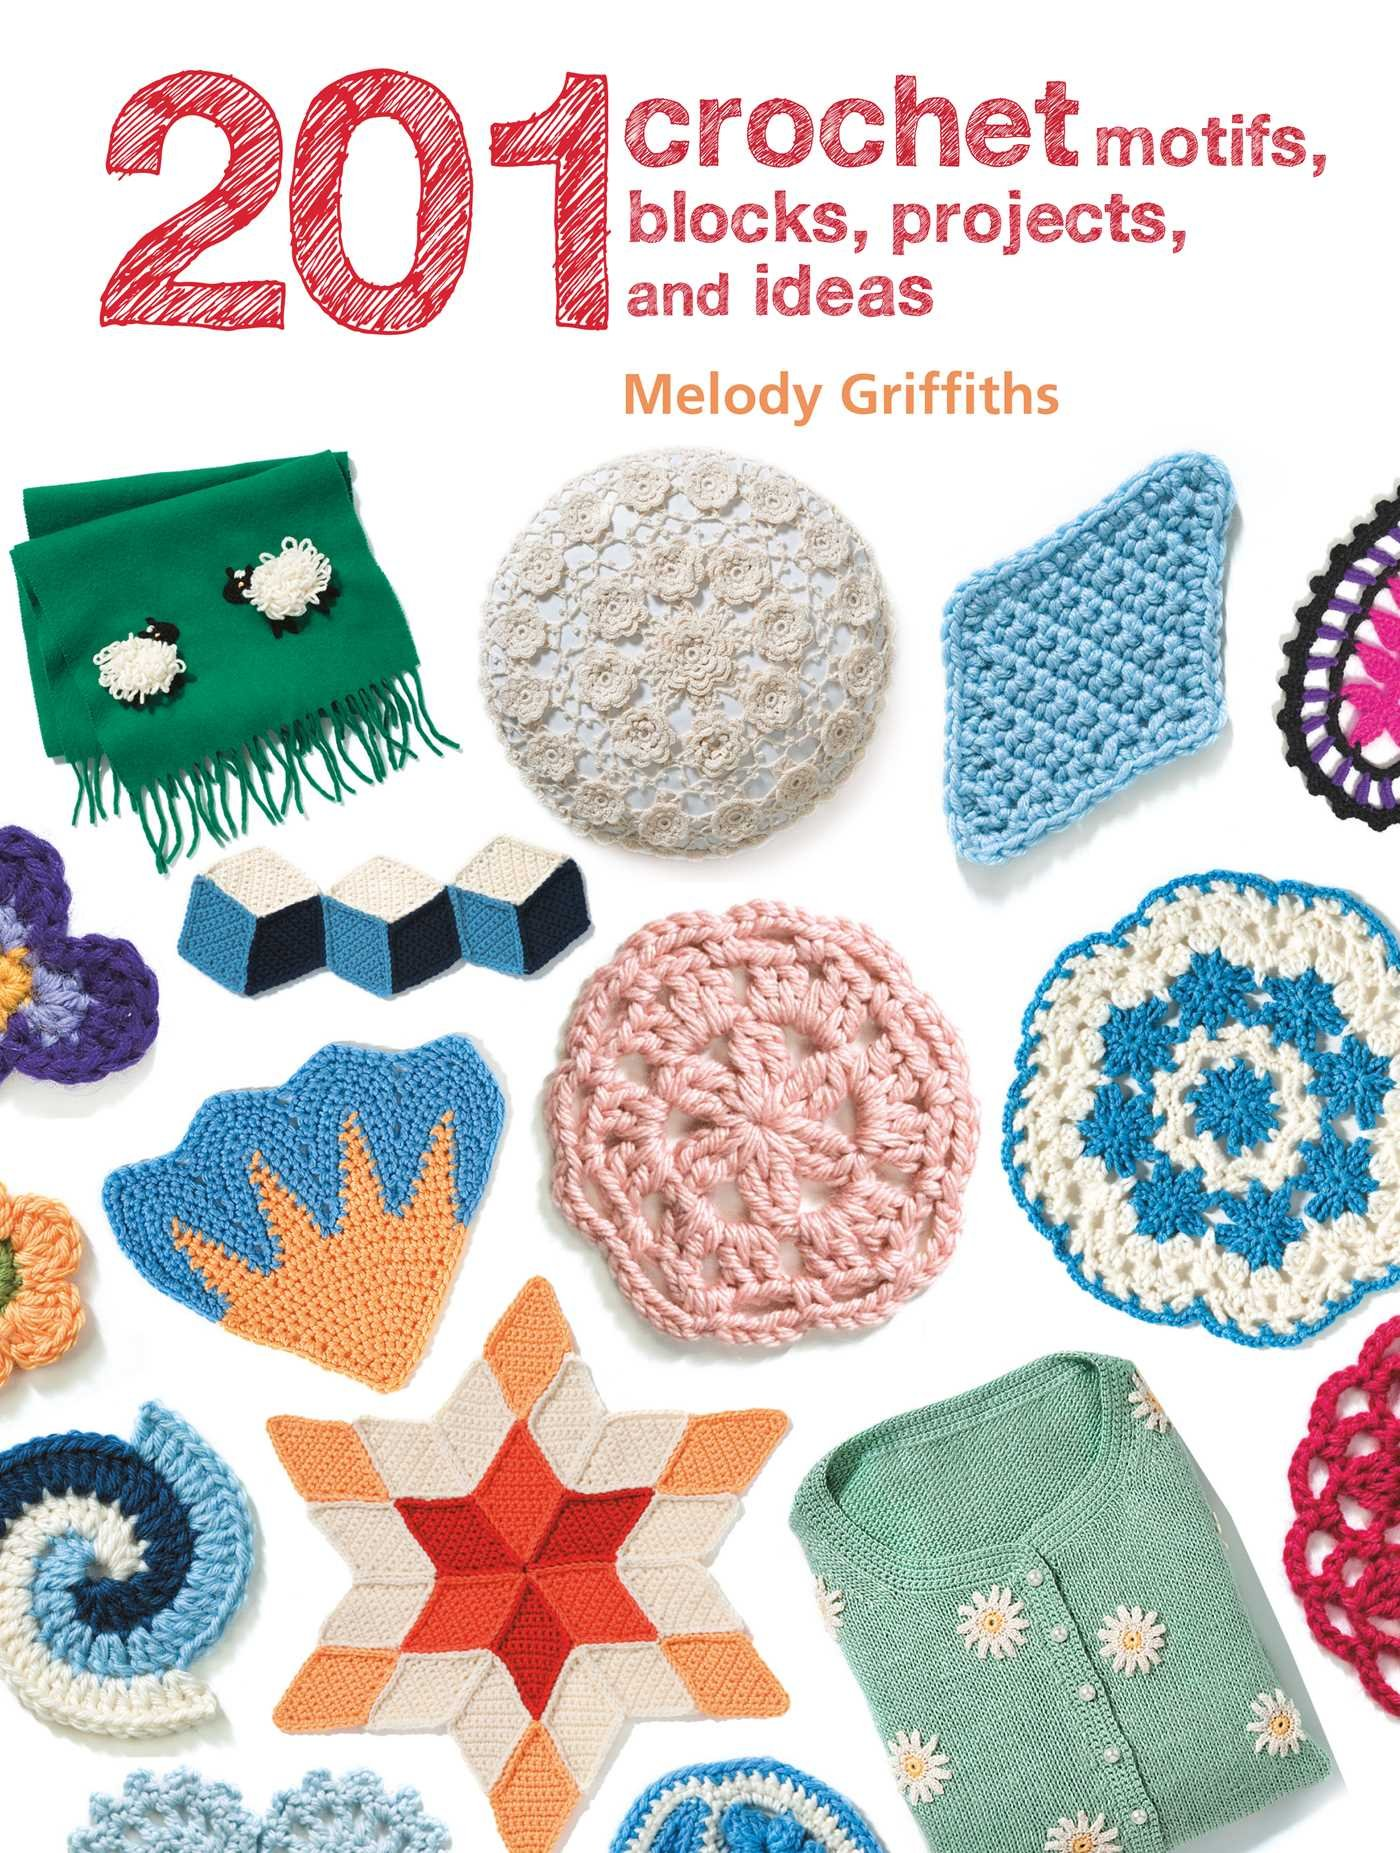 201 Crochet Motifs Blocks Projects And Ideas Melody Griffiths